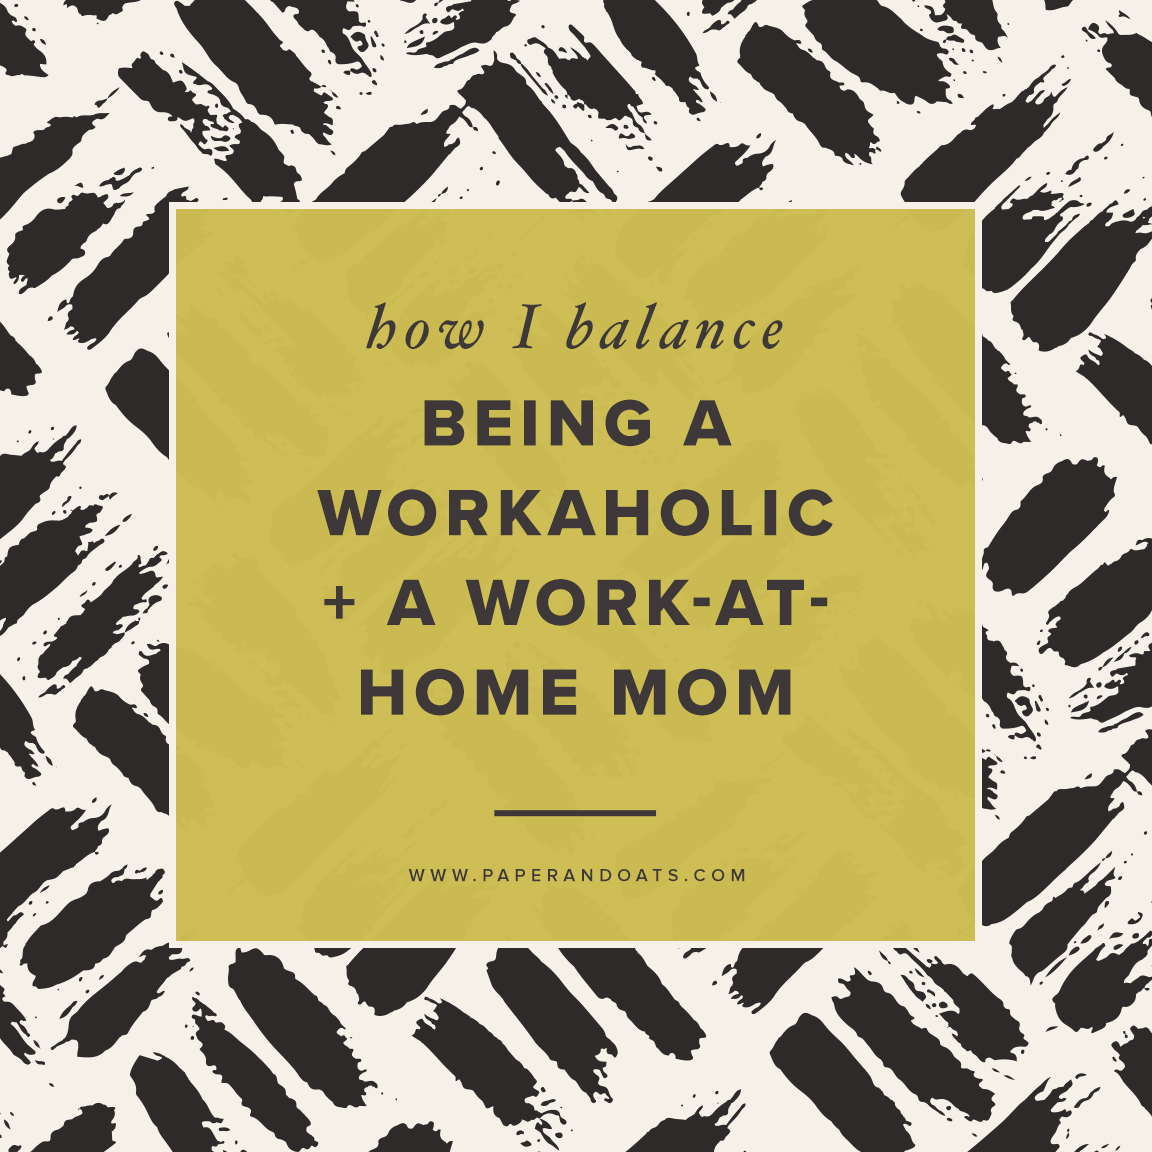 How to balance being a workaholic + a work-at-home mom – by Paper + Oats (www.paperandats.com)